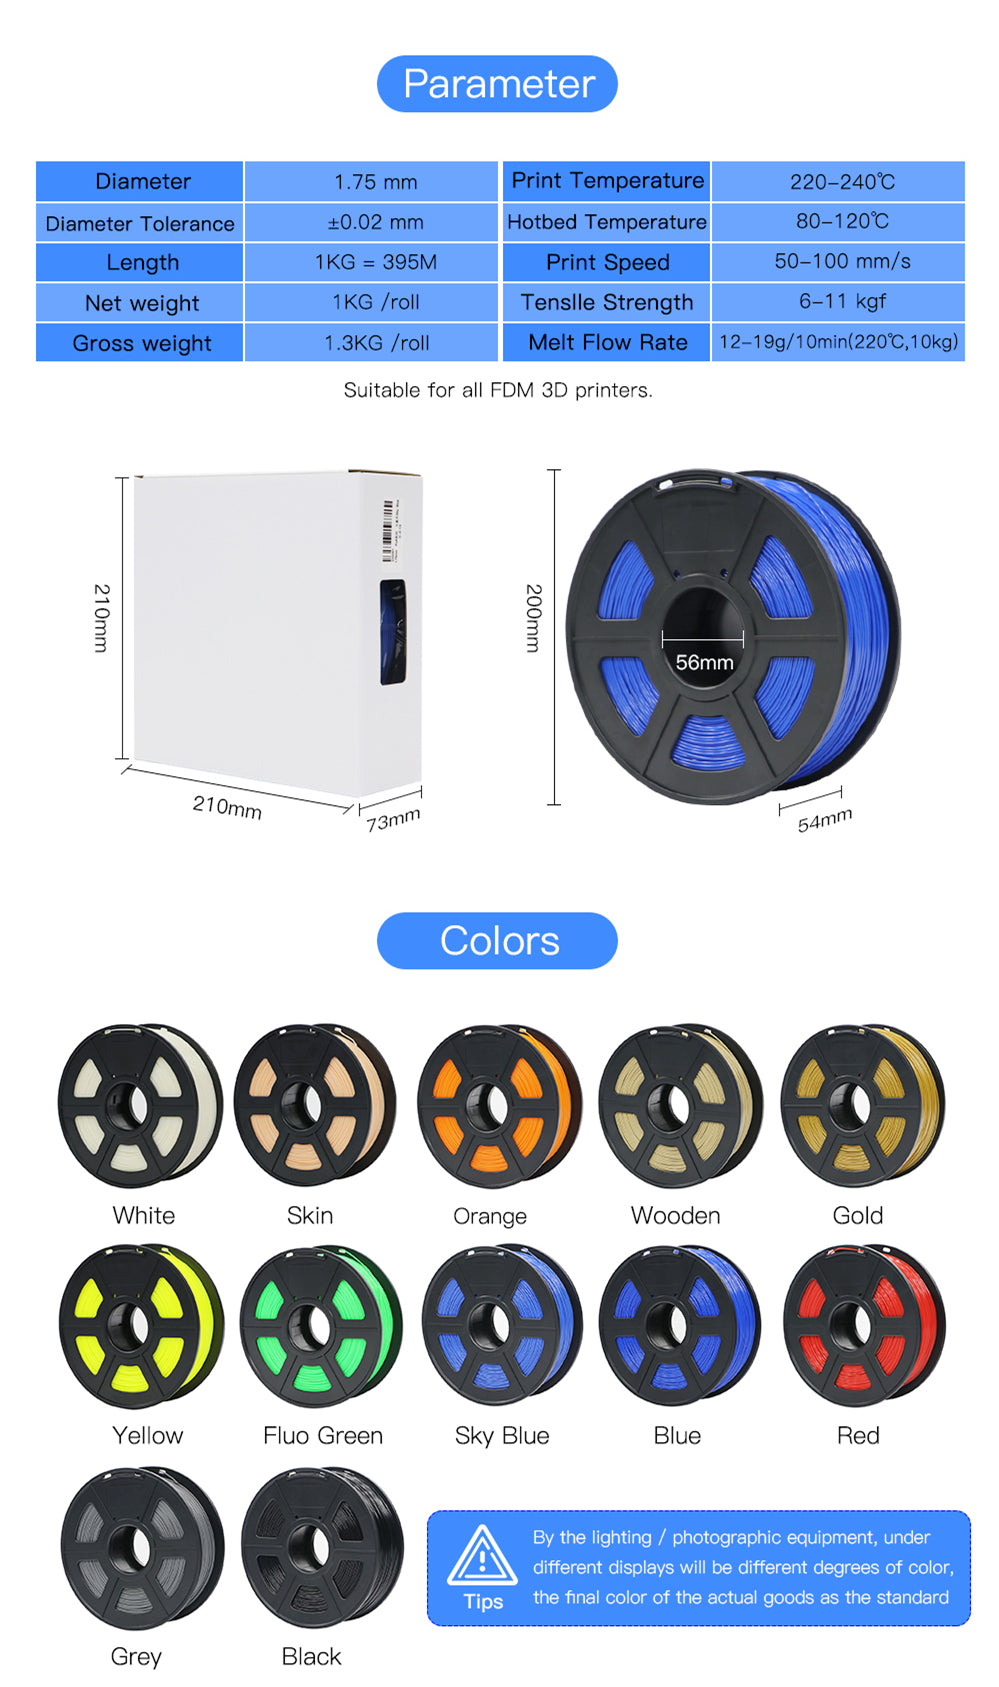 ANYCUBIC ABS Filament 3D printer 1.75mm 1kg (14 Color Options)